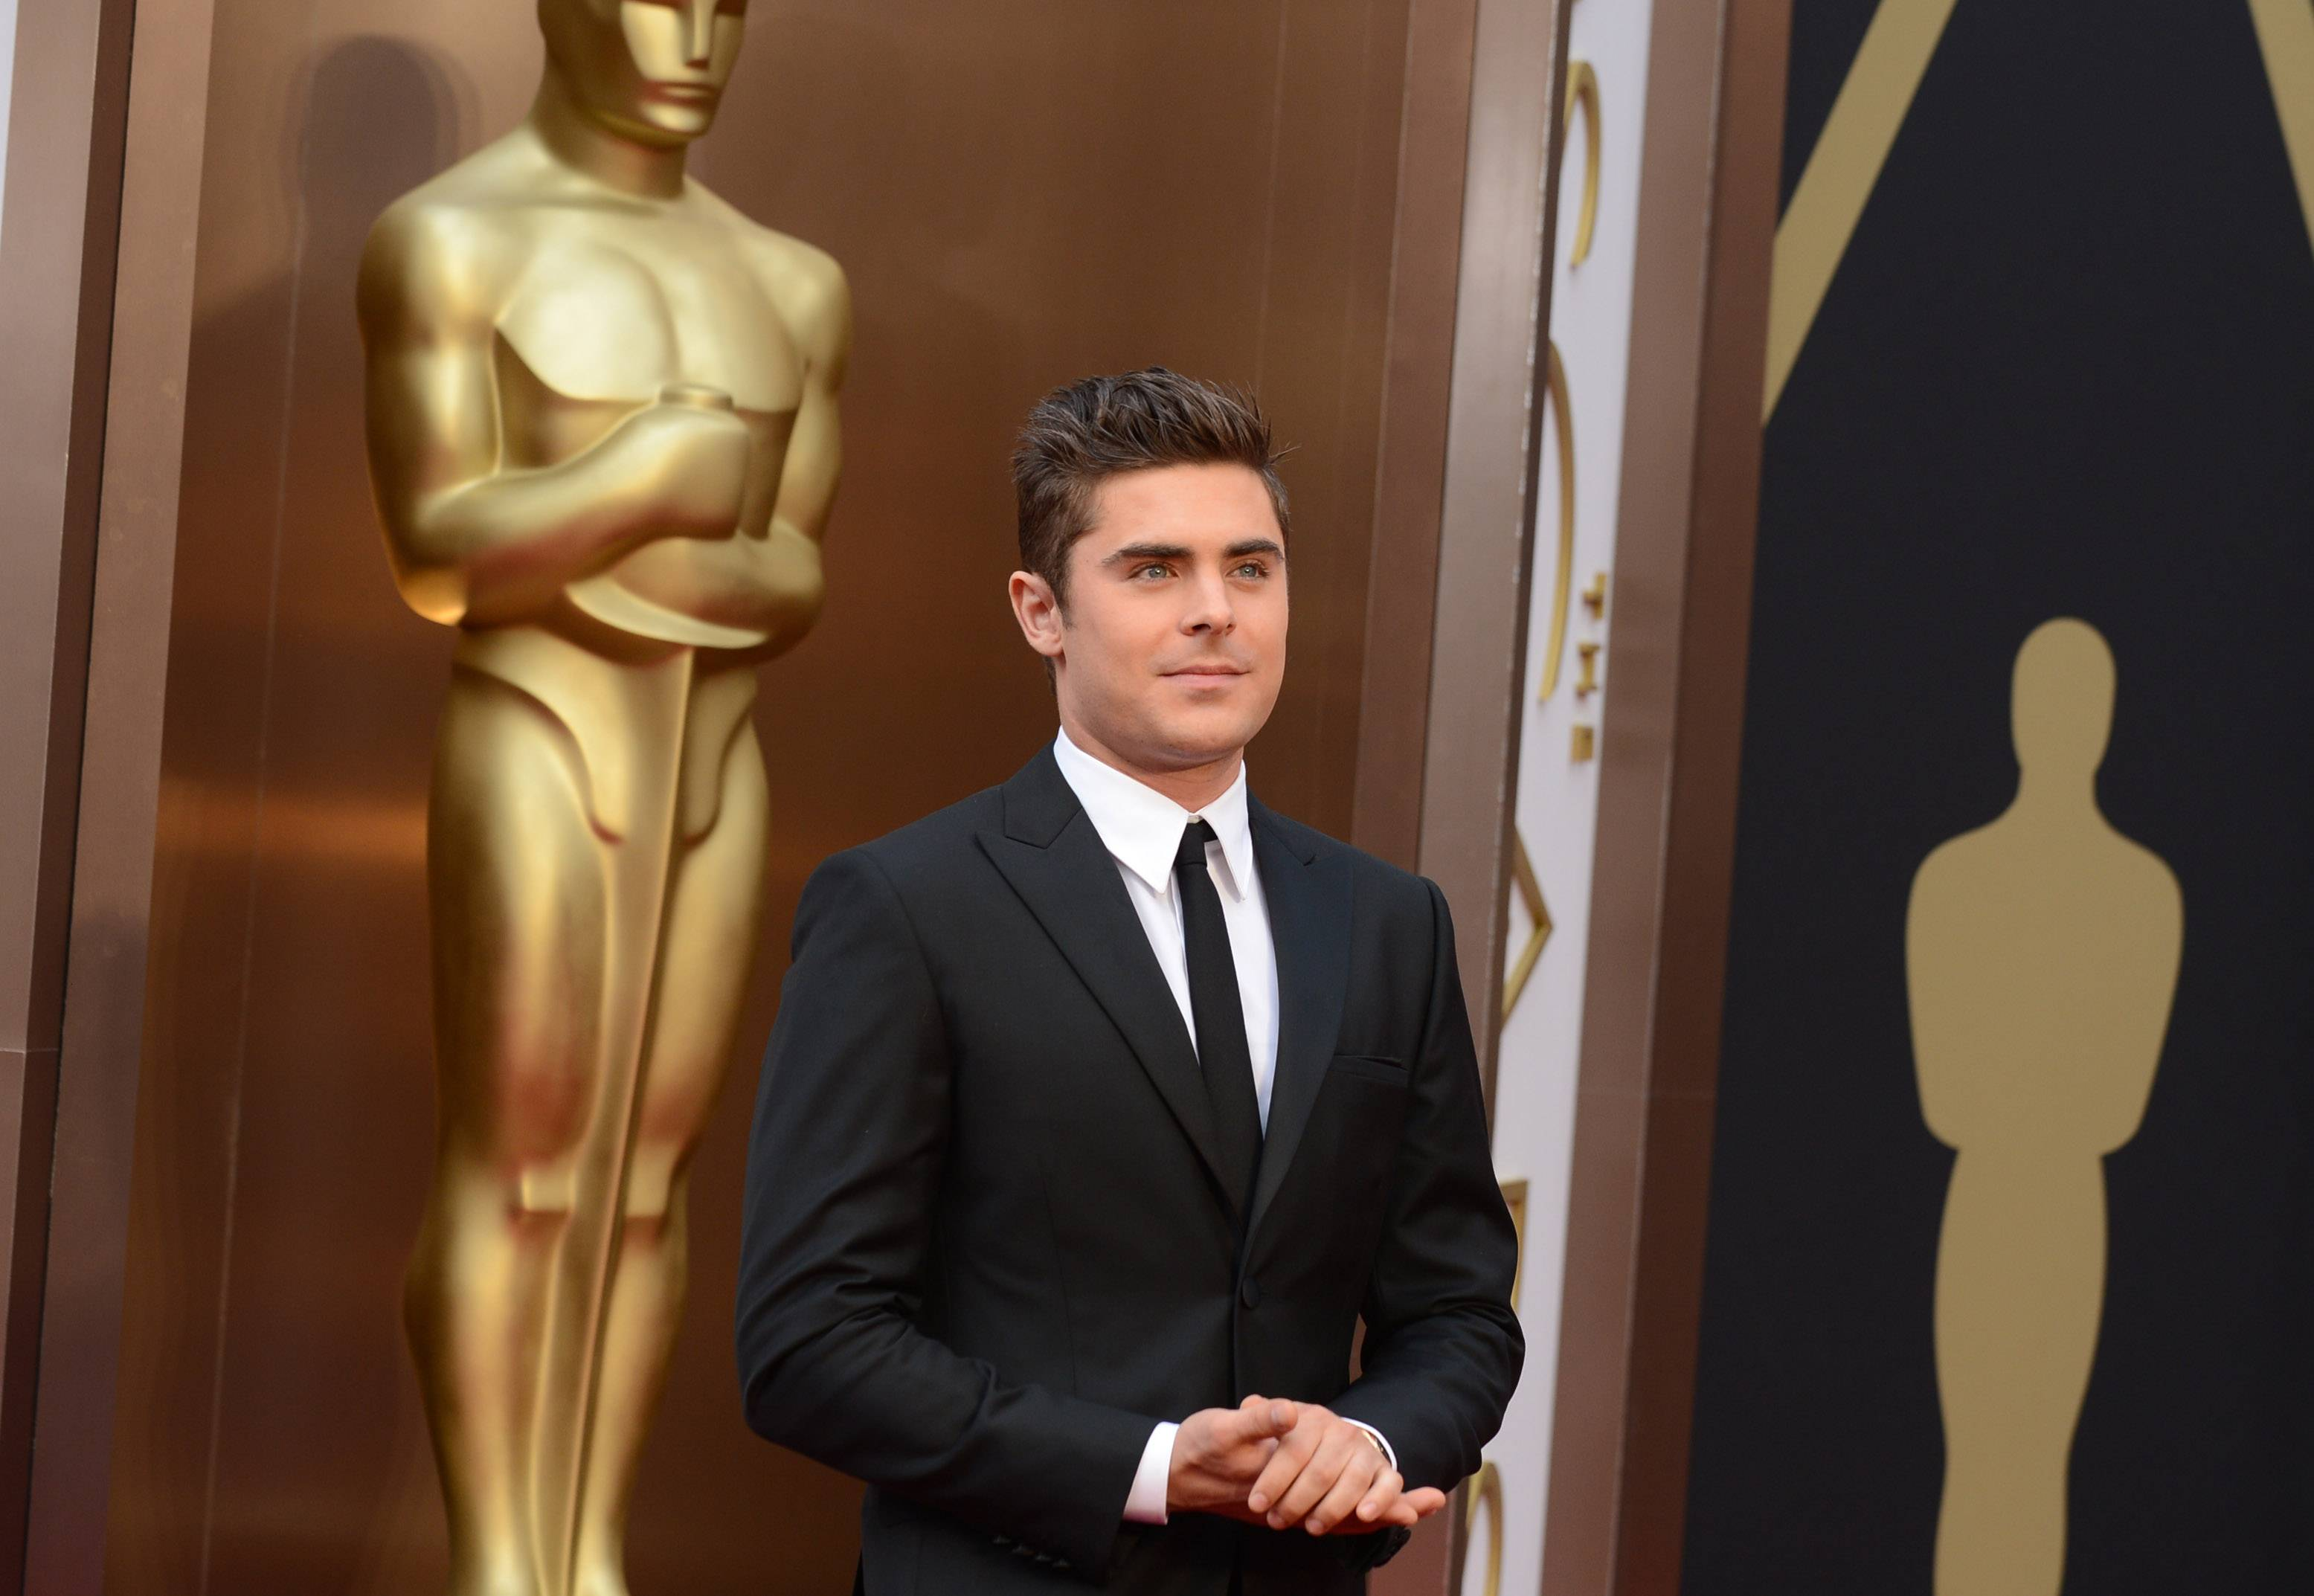 Zac Efron arrives at the Oscars on Sunday.